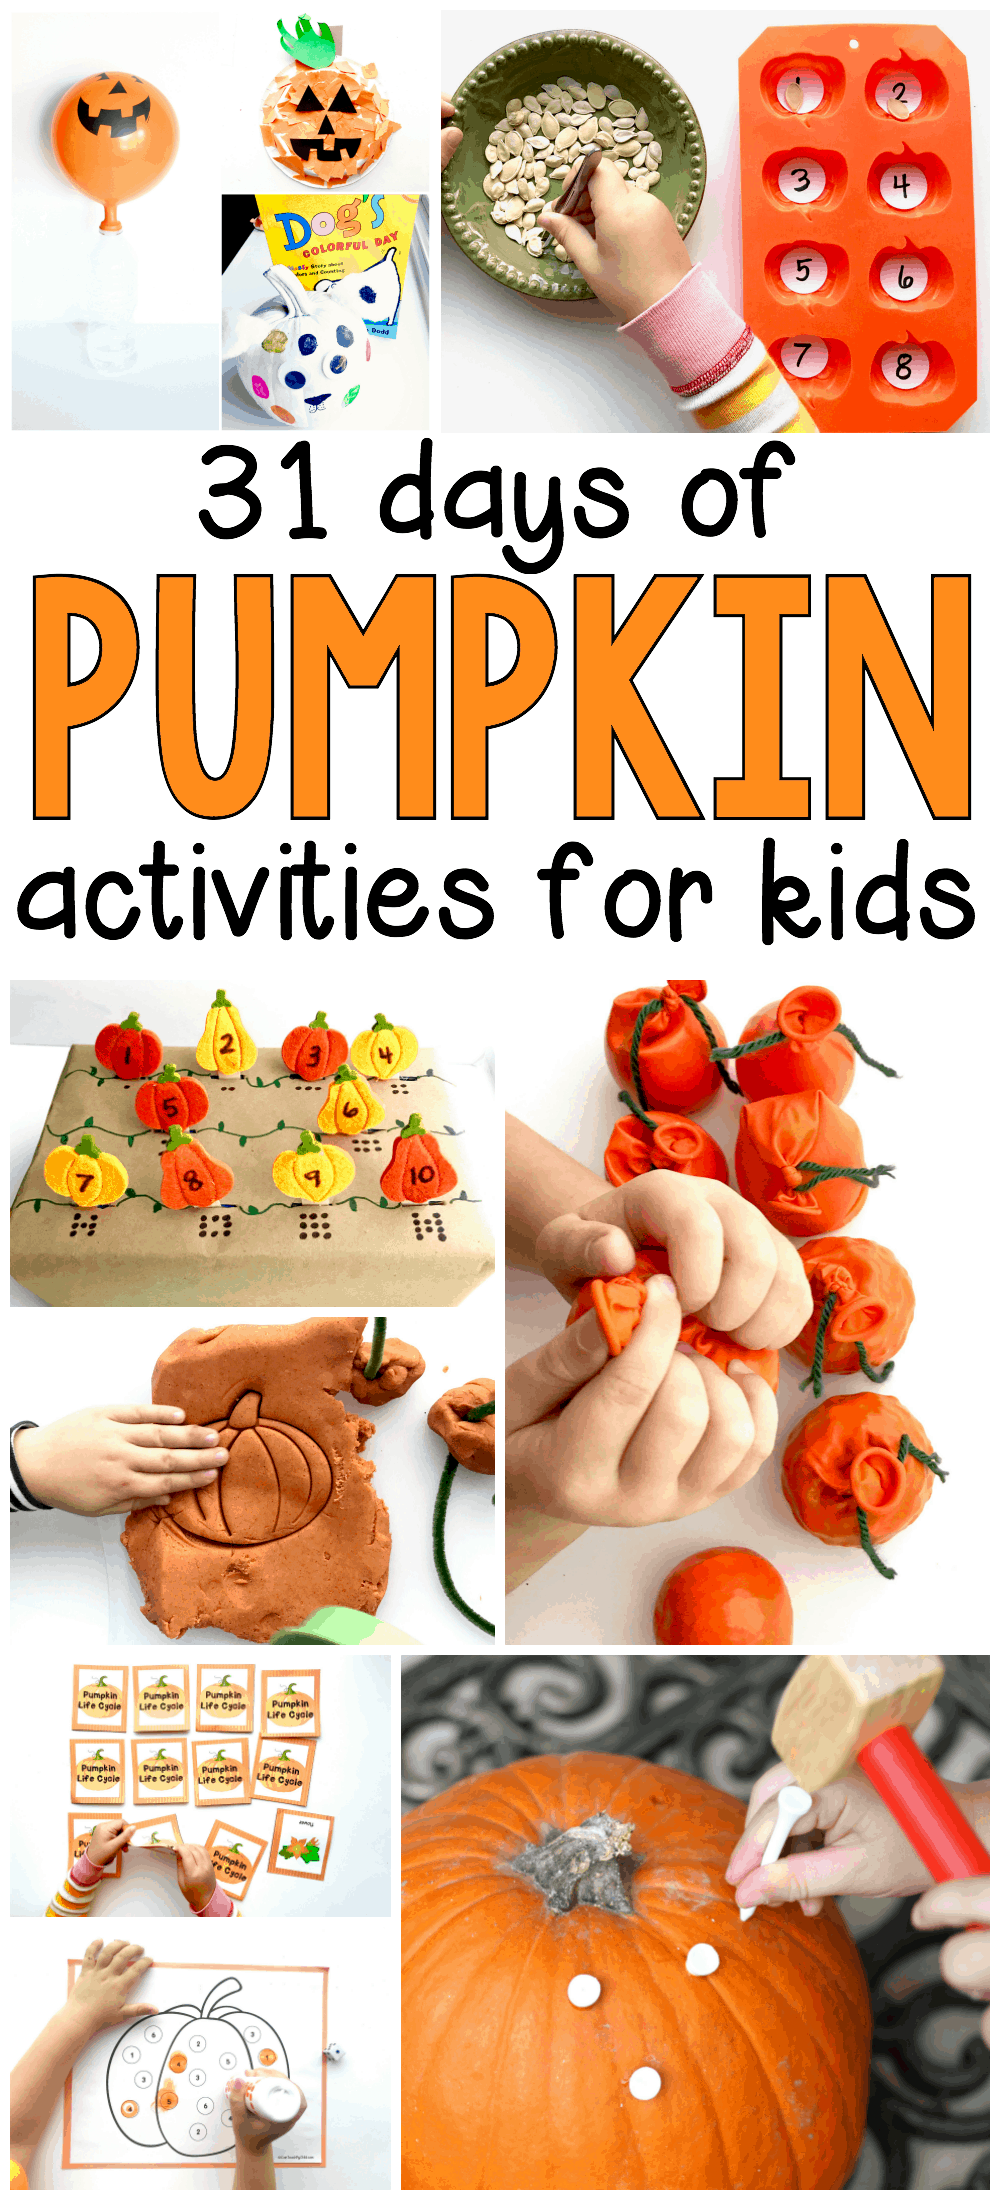 31 Days of Pumpkin Activities - I Can Teach My Child!